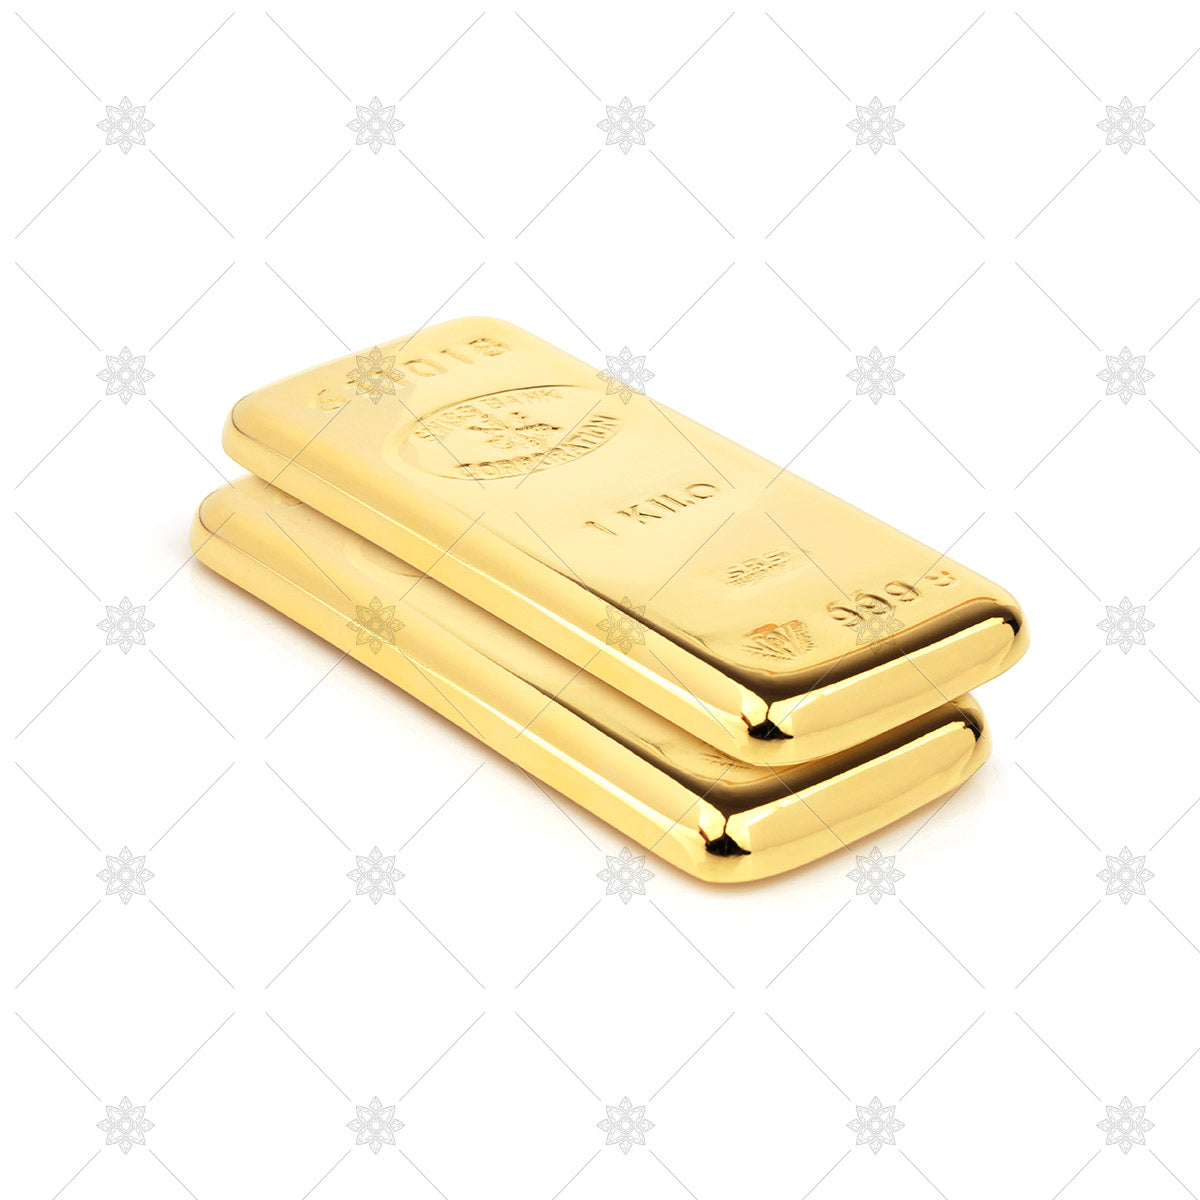 gold bullion bars image 1kg bar weights